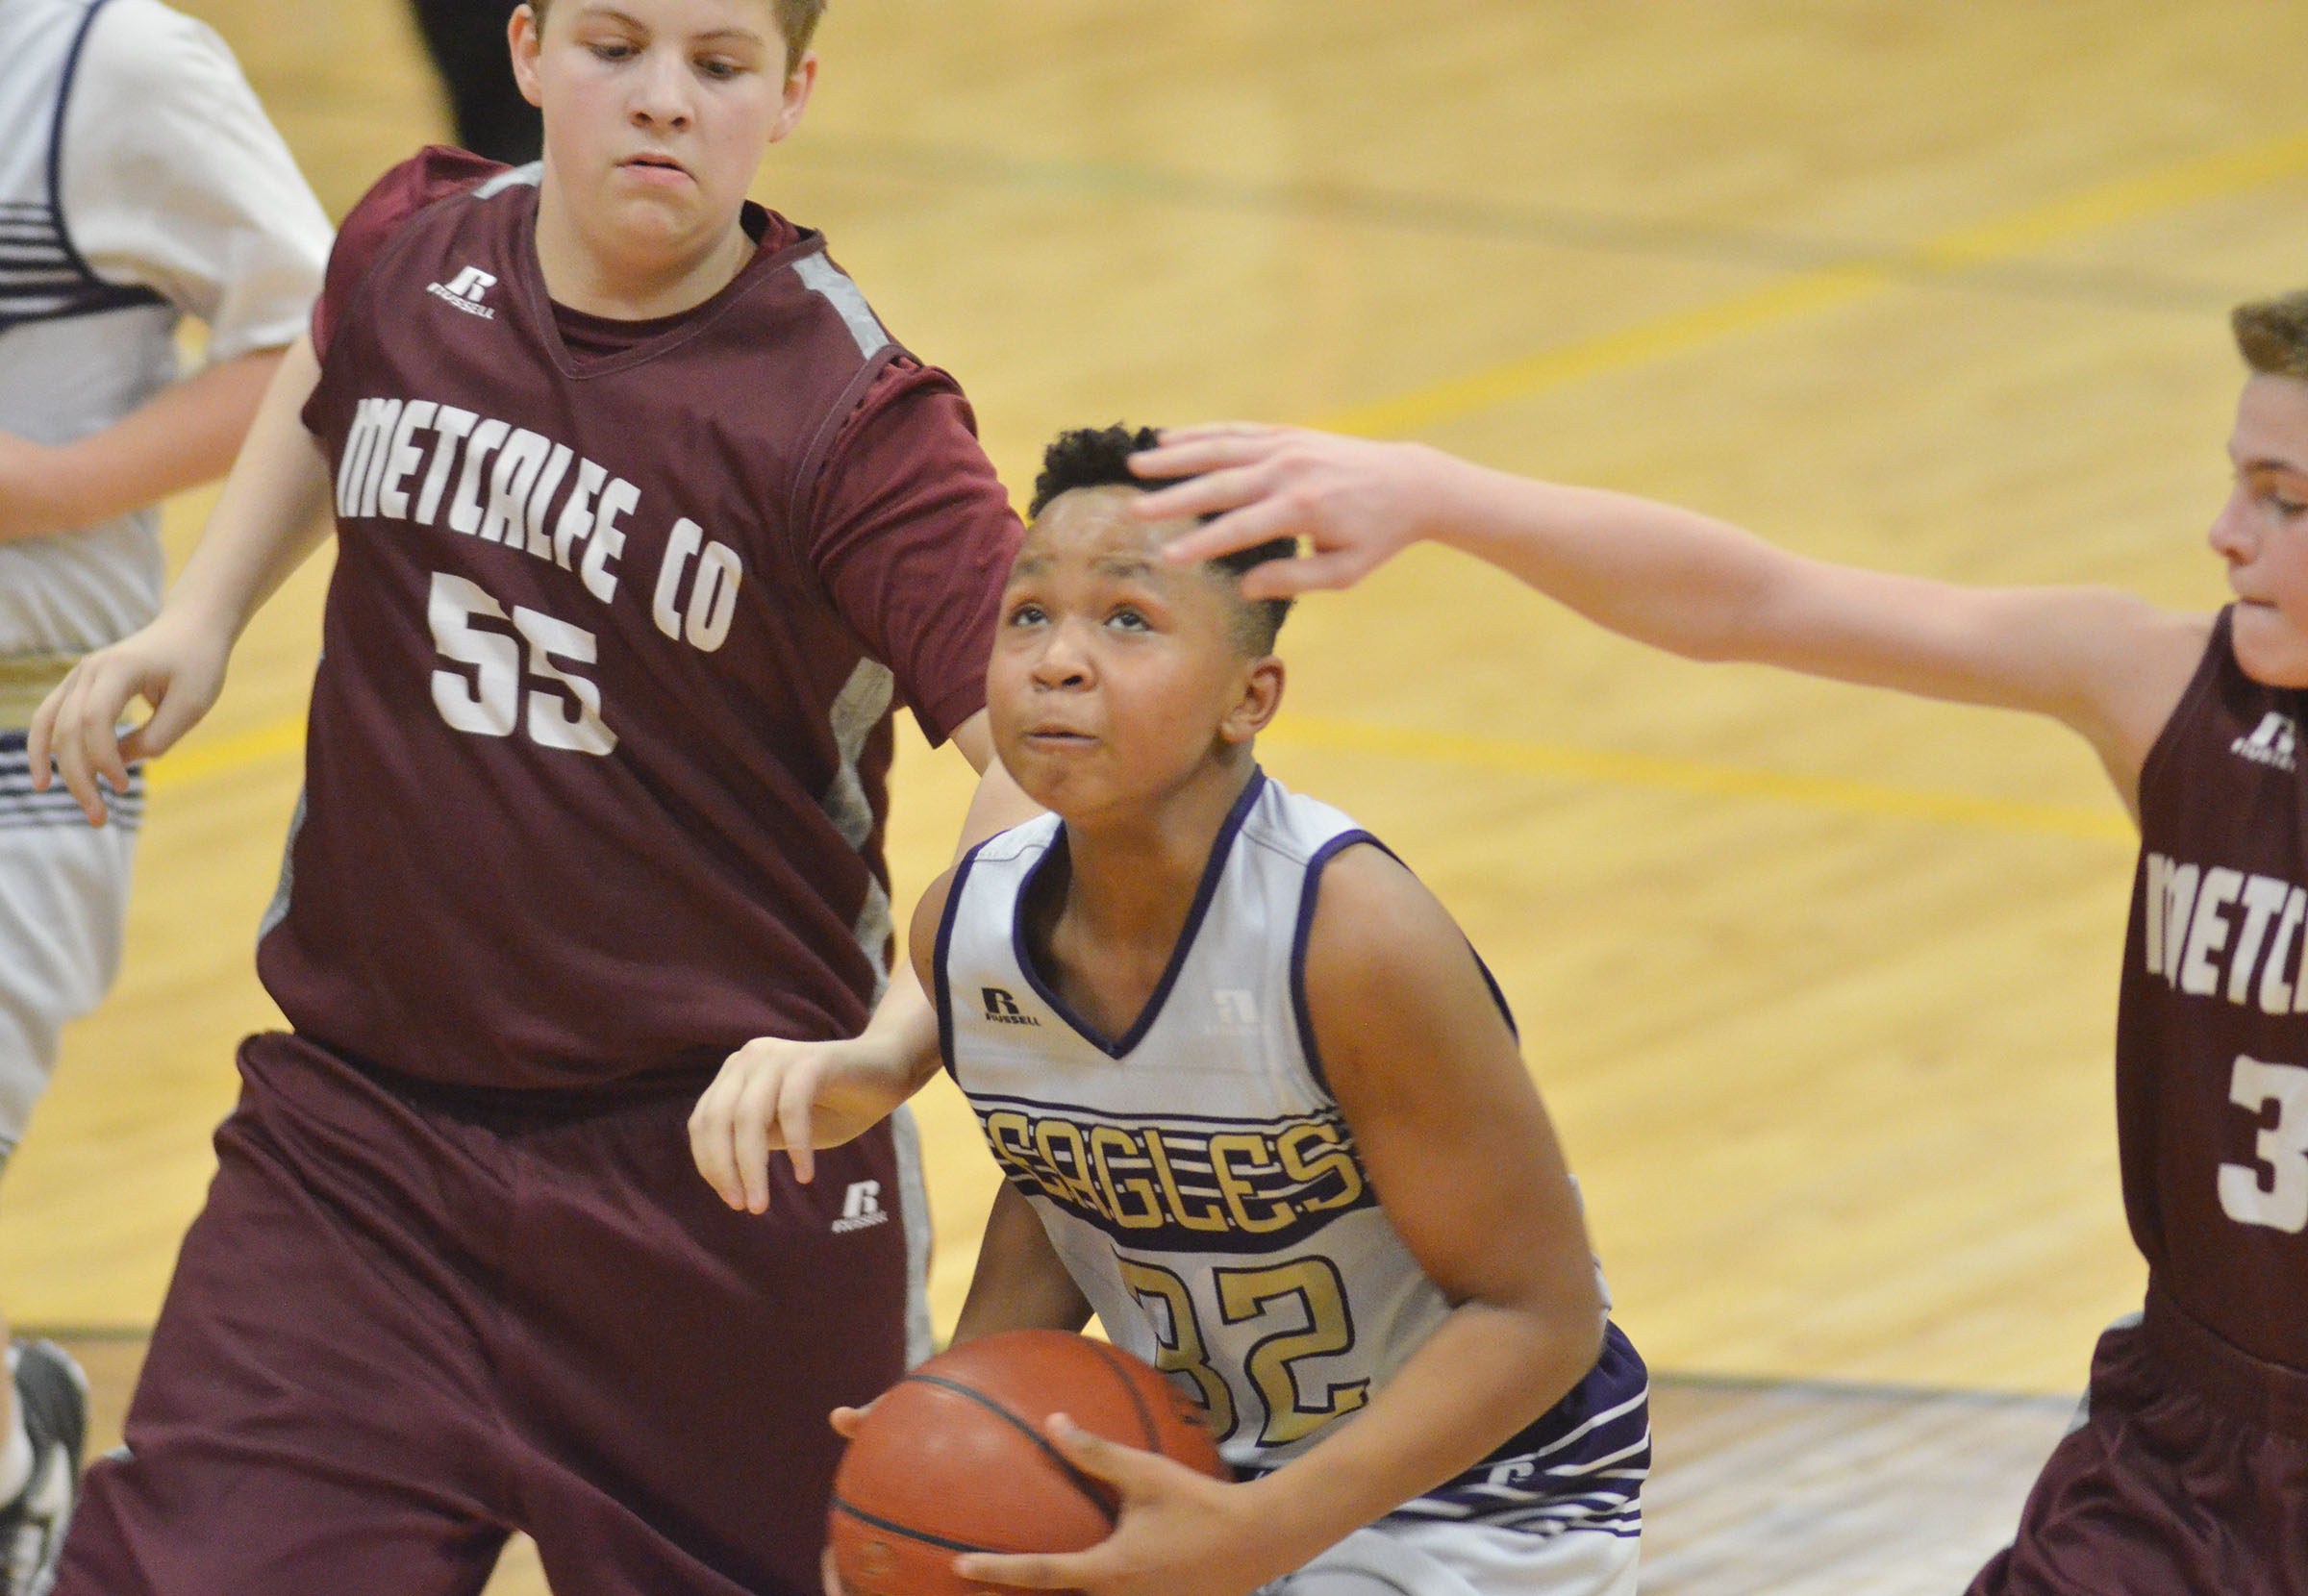 CMS sixth-grader Deondre Weathers shoots the ball.